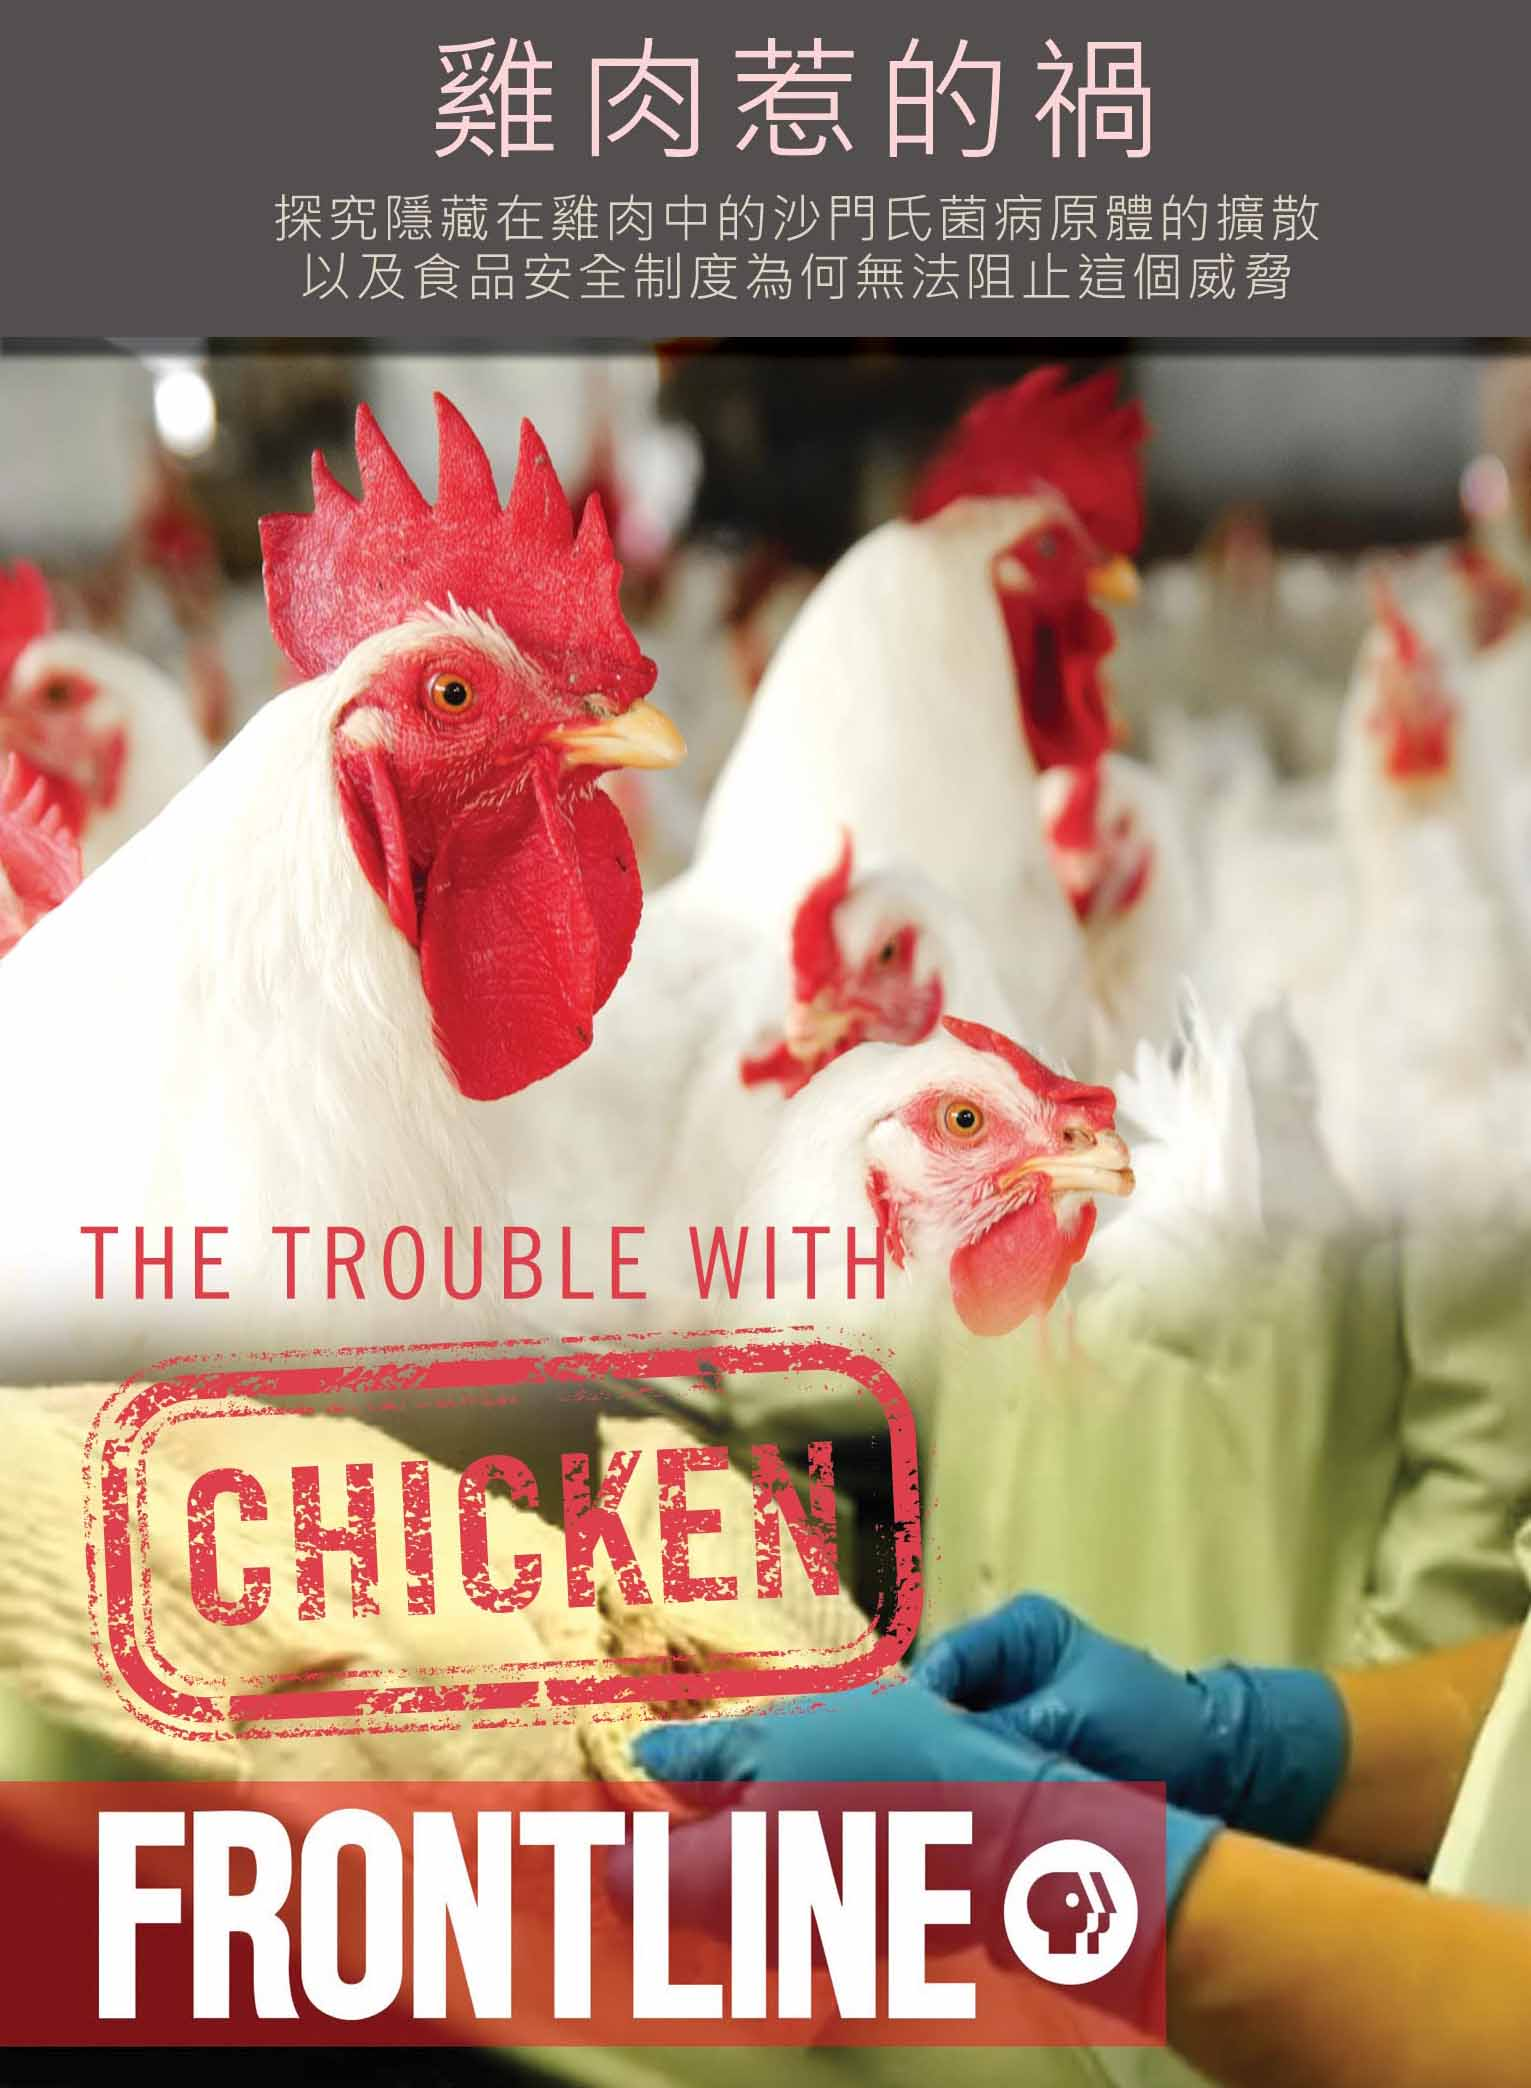 The trouble with chicken